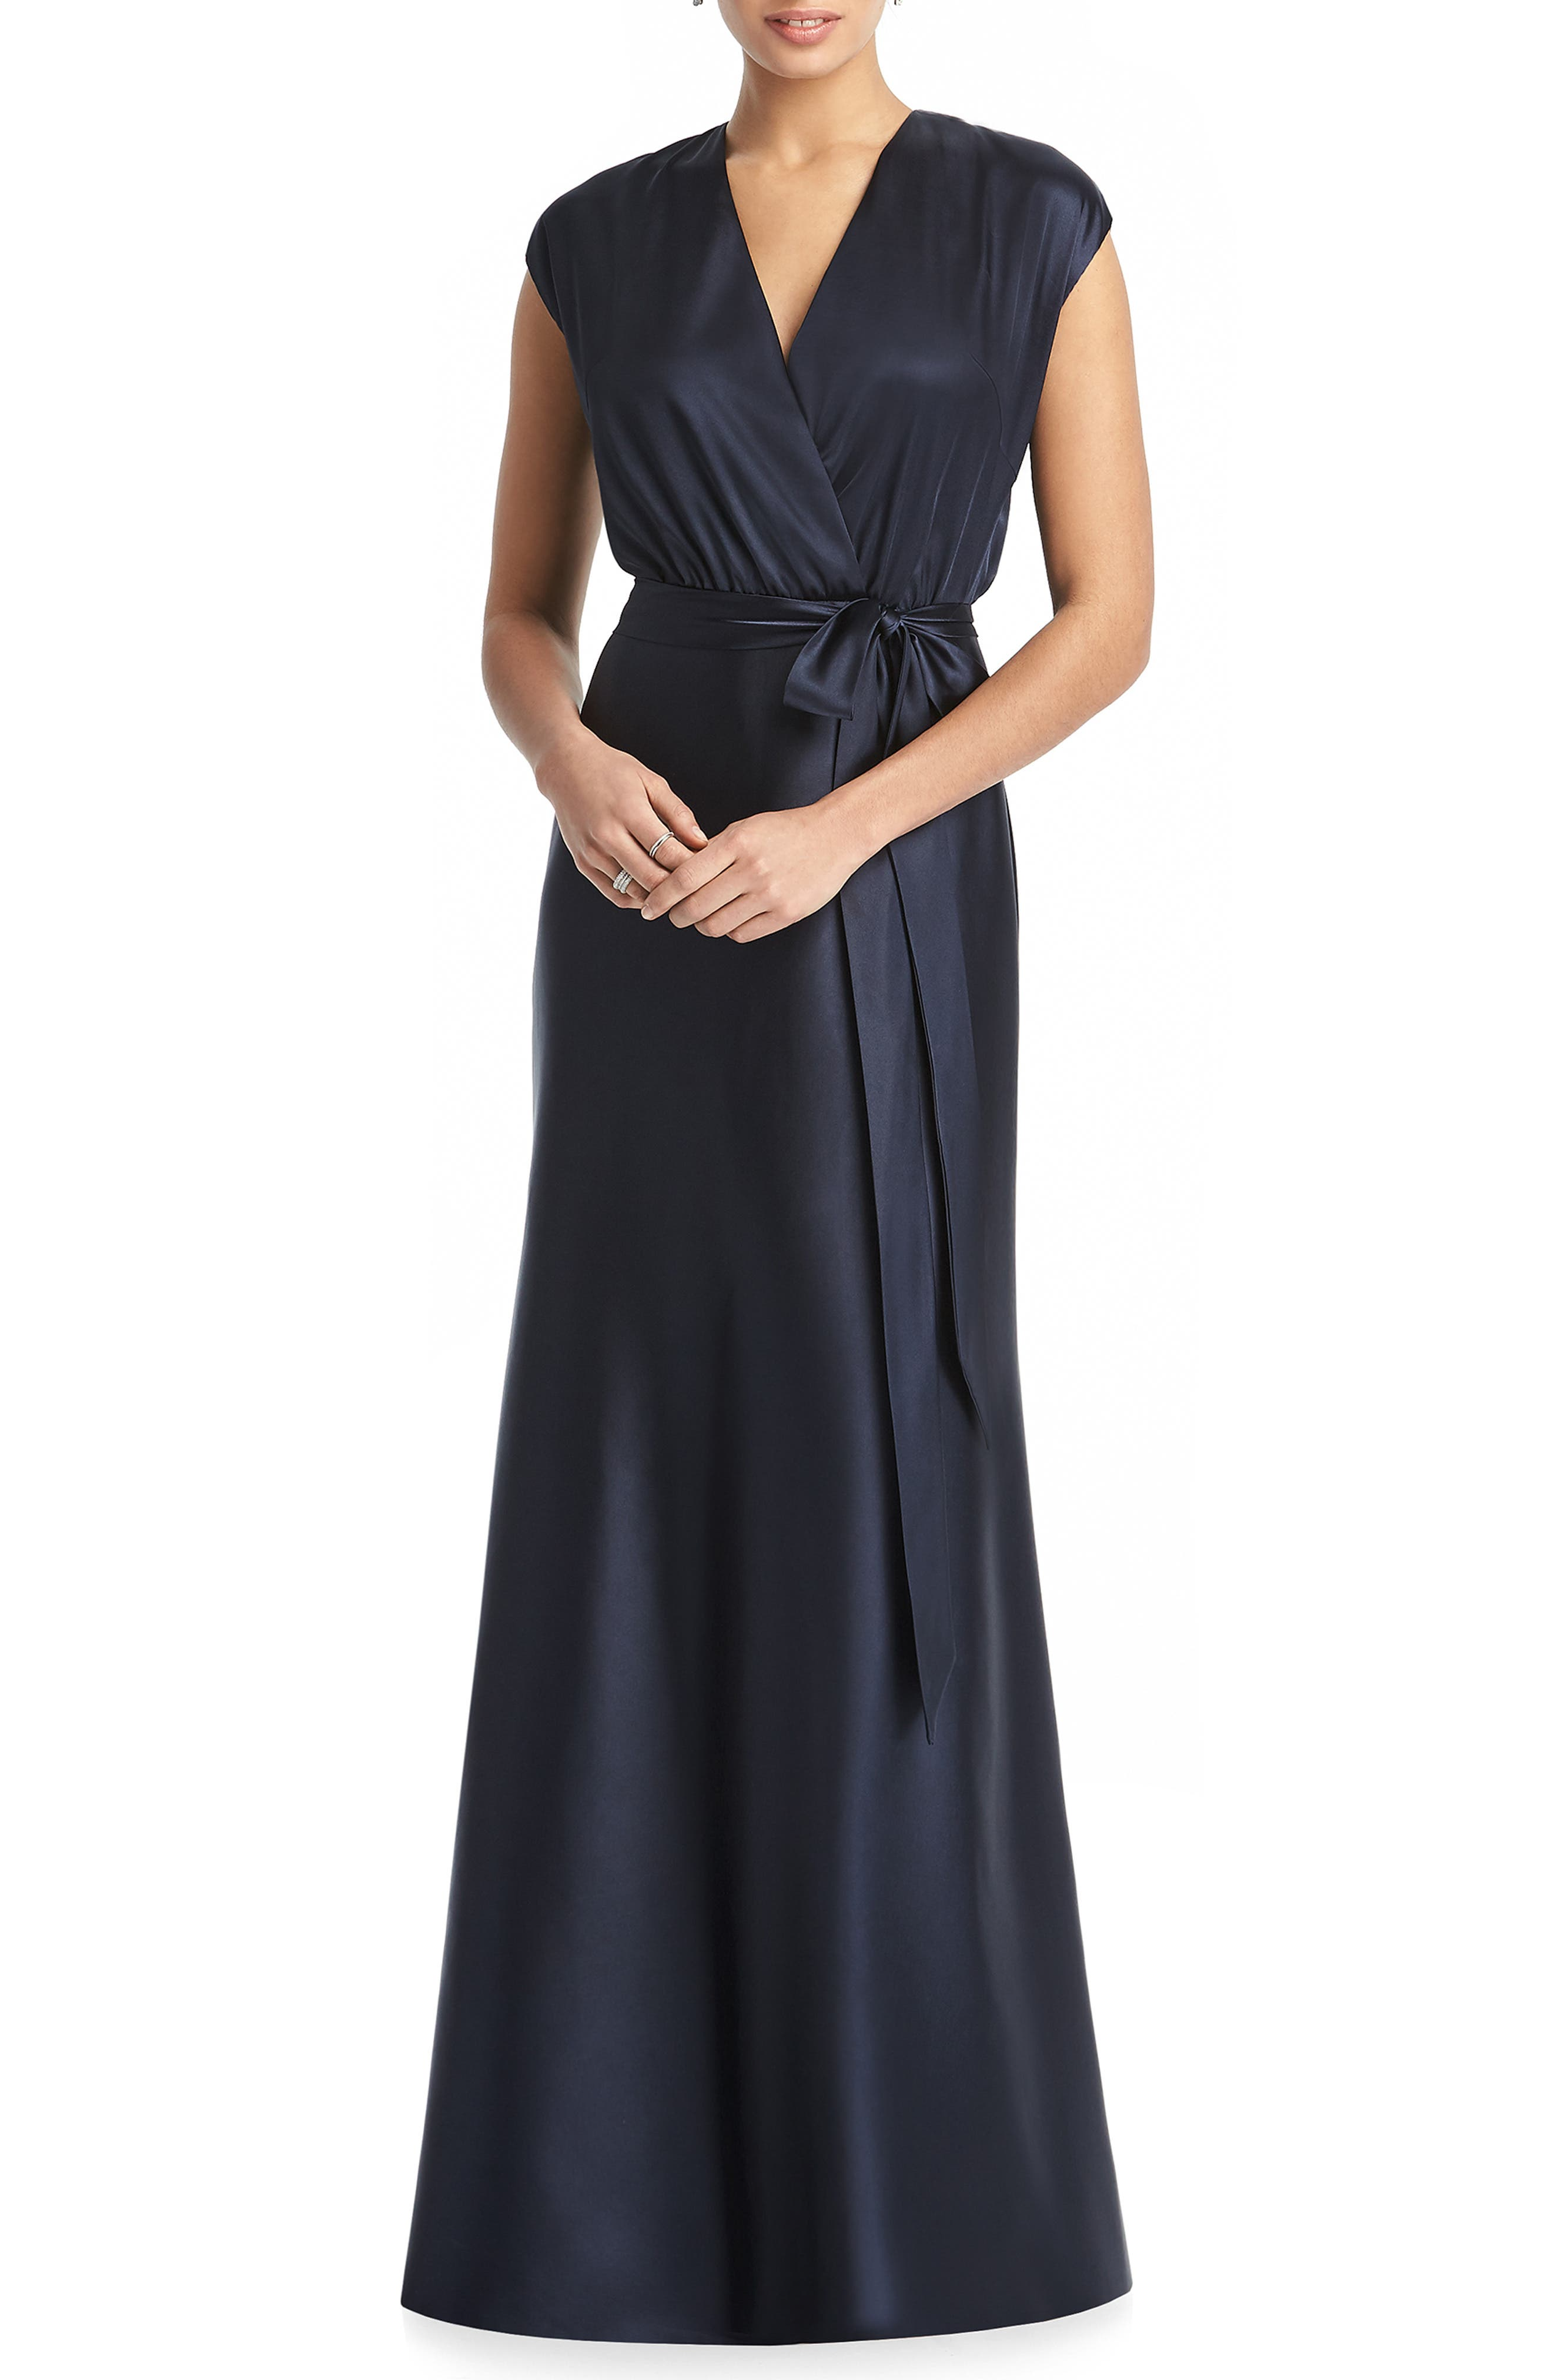 DESSY COLLECTION, V-Neck Stretch Chameuse Gown, Main thumbnail 1, color, MIDNIGHT